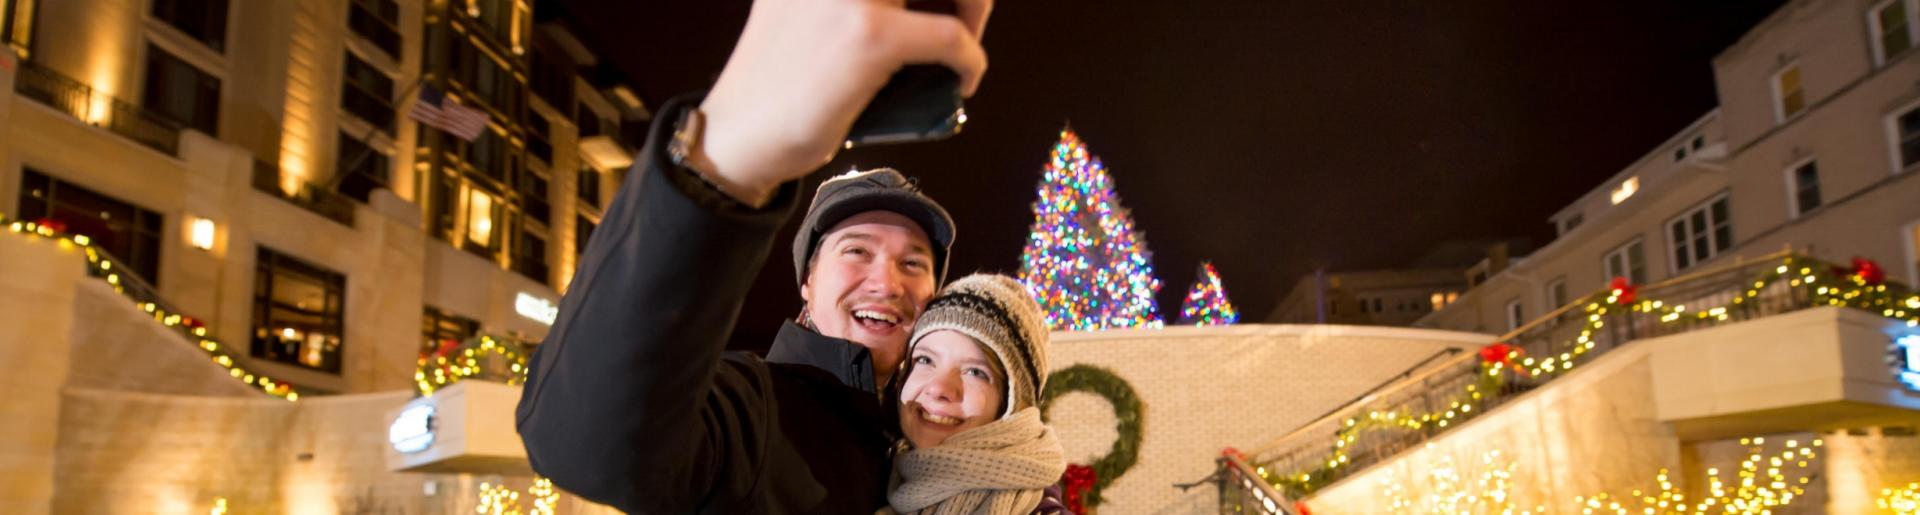 Holiday Events Article Header